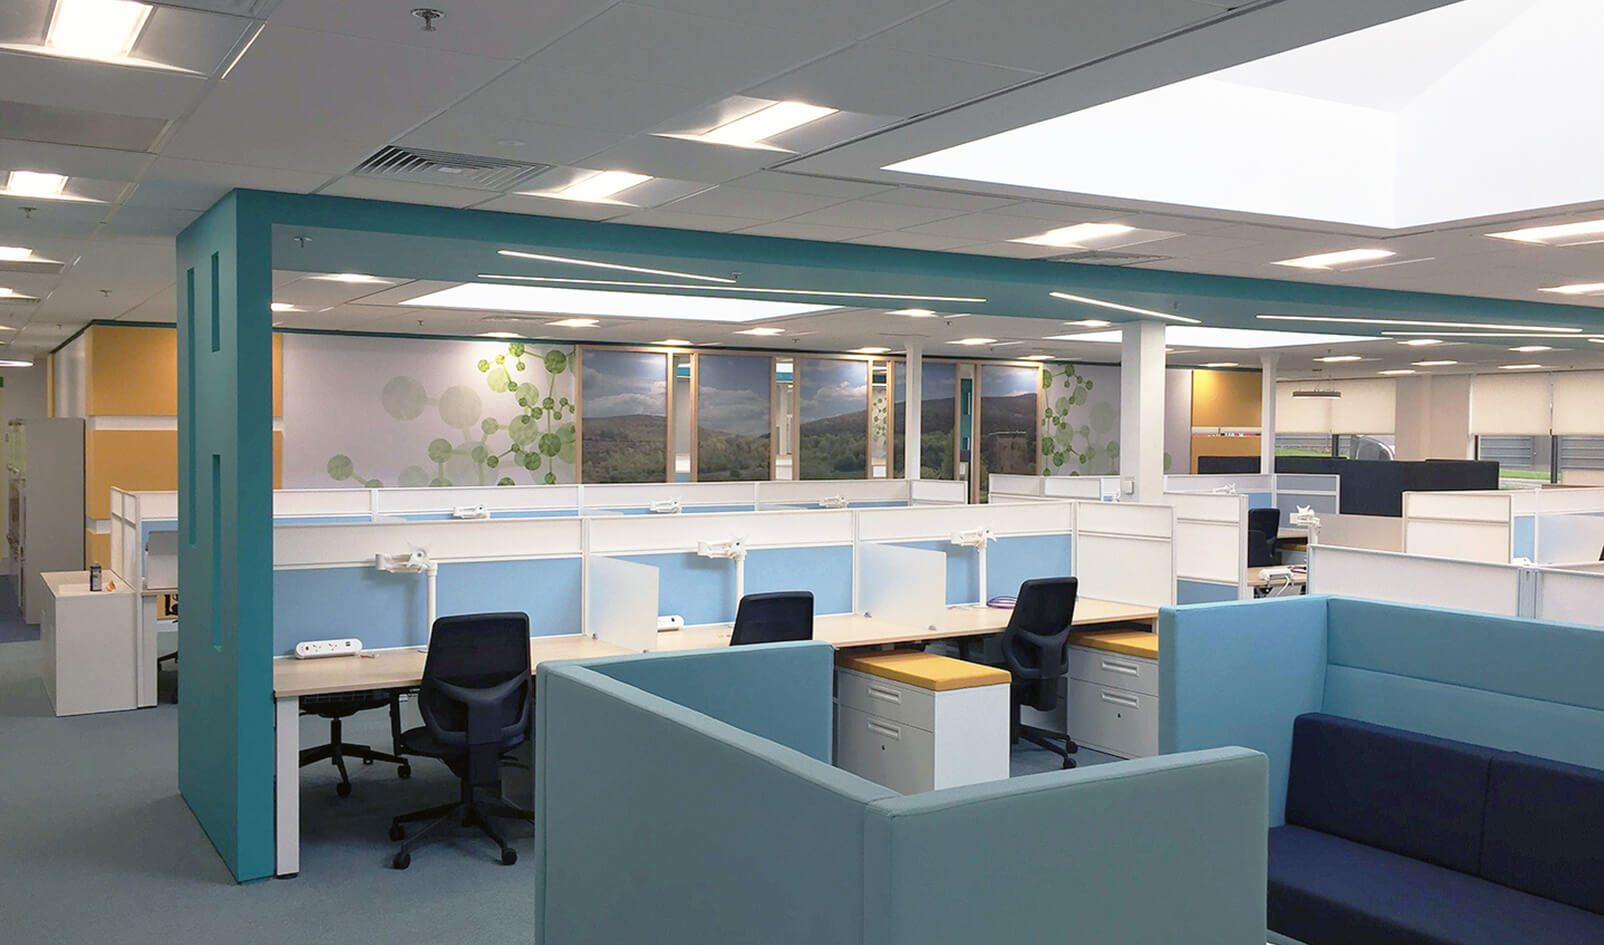 Life Science Innovation Workplace Fit Out Cjfa Architecture Msd Ballydine Clonmel Tipperary Hero